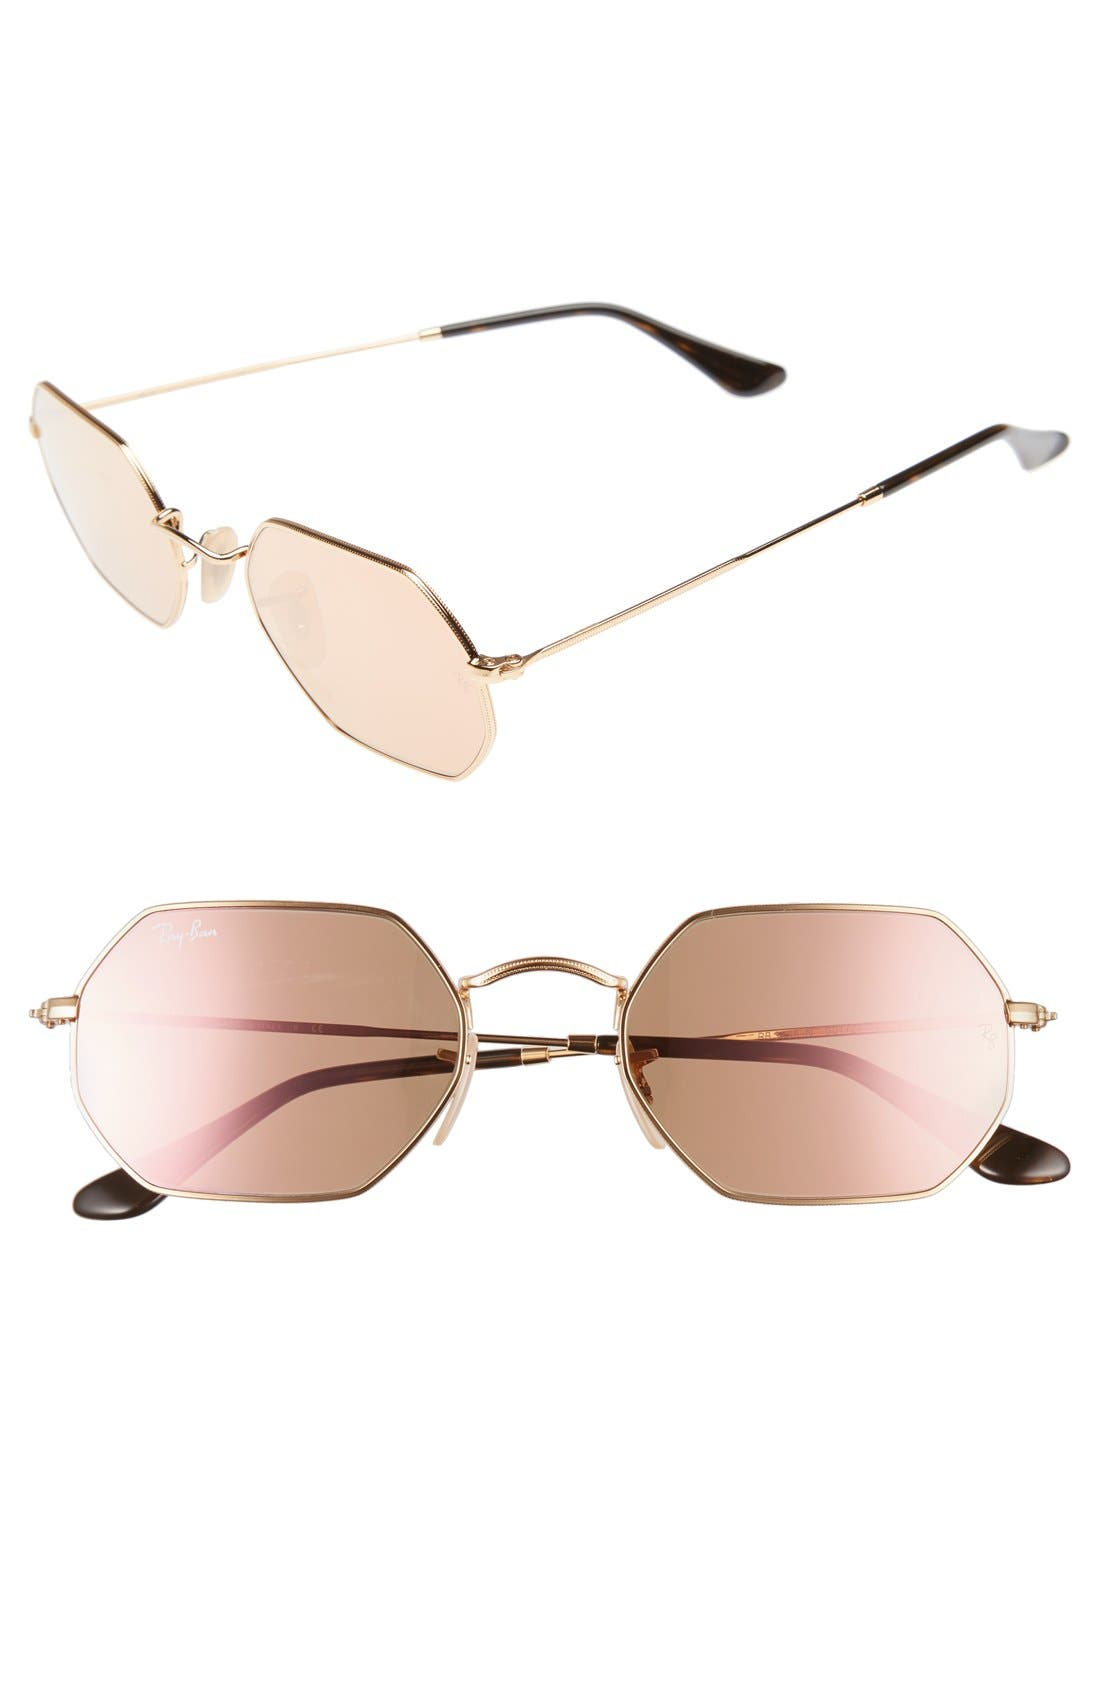 Icons 53mm Sunglasses,                         Main,                         color, 220